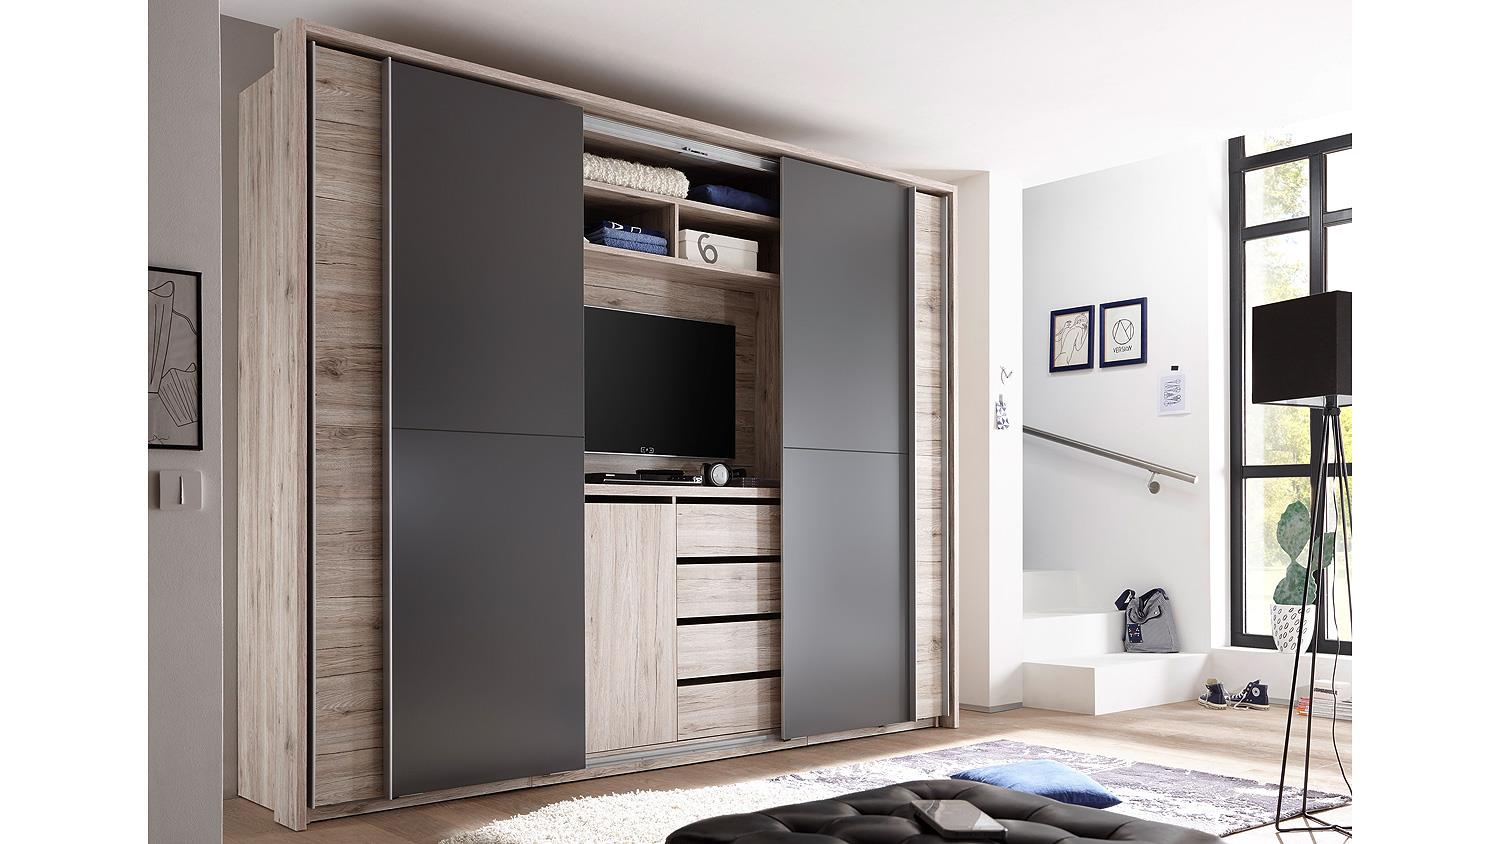 schwebet renschrank cinema schrank sandeiche lava tvfach. Black Bedroom Furniture Sets. Home Design Ideas